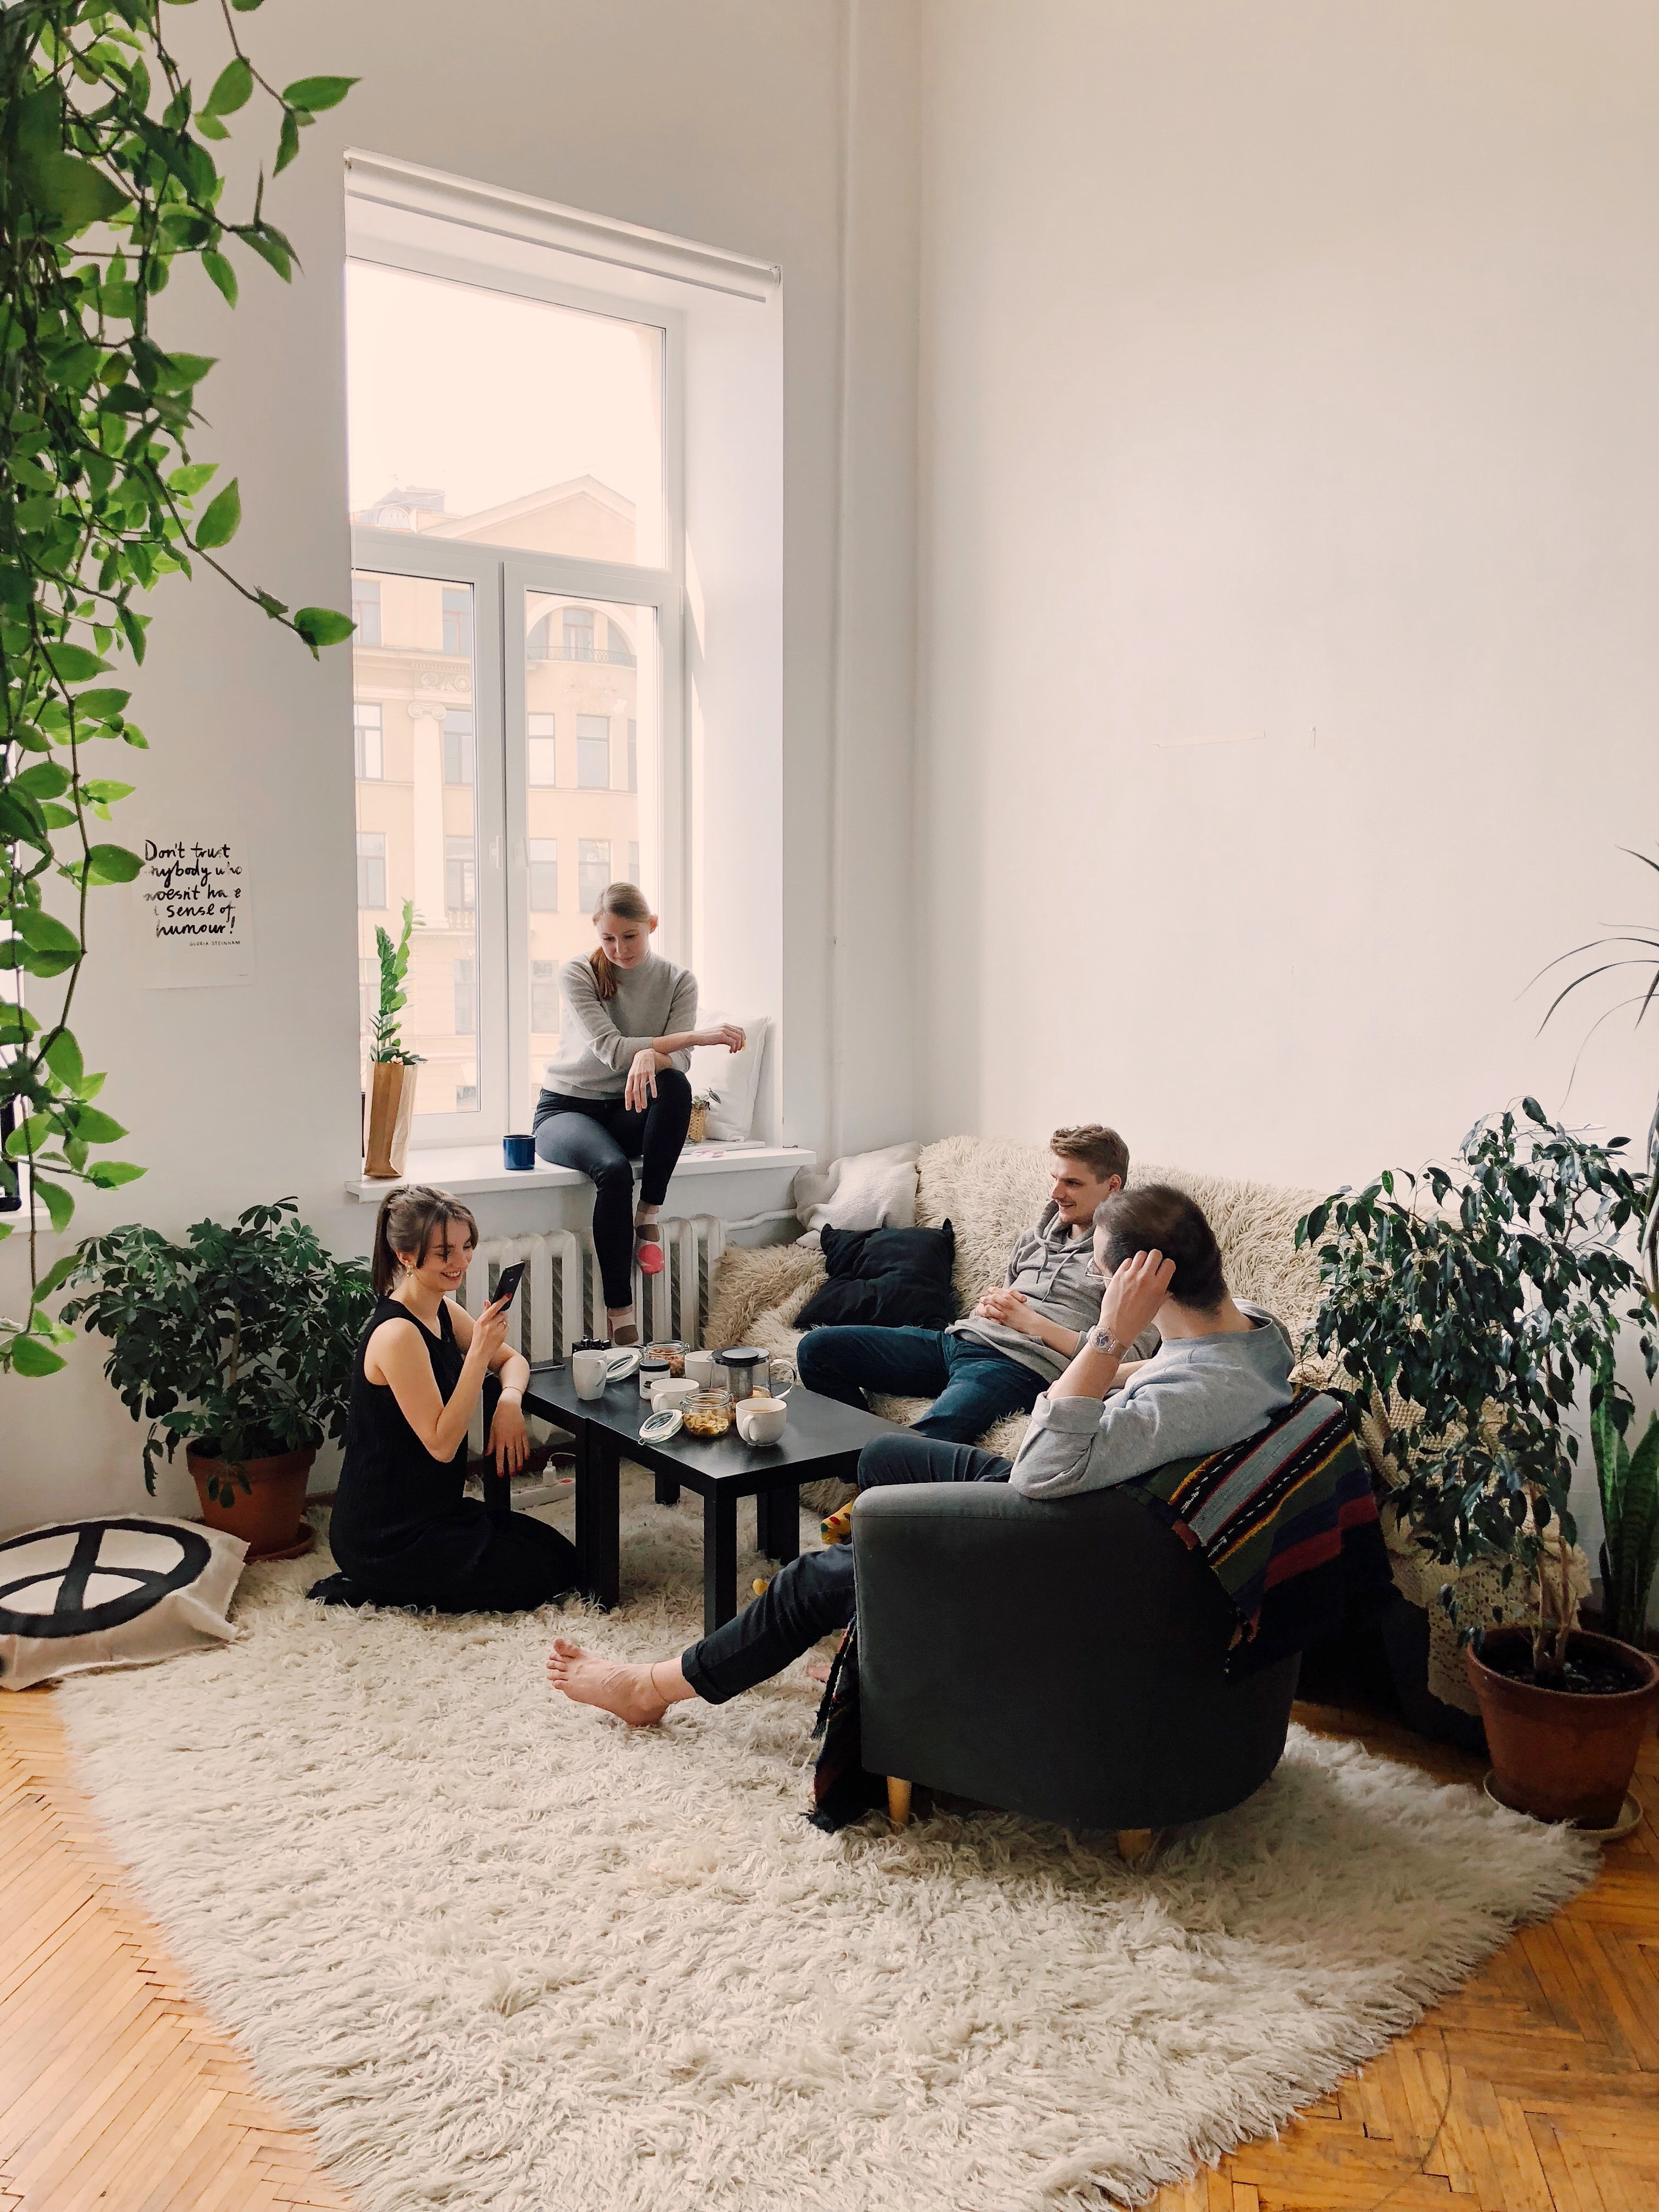 A photo of friends in an apartment